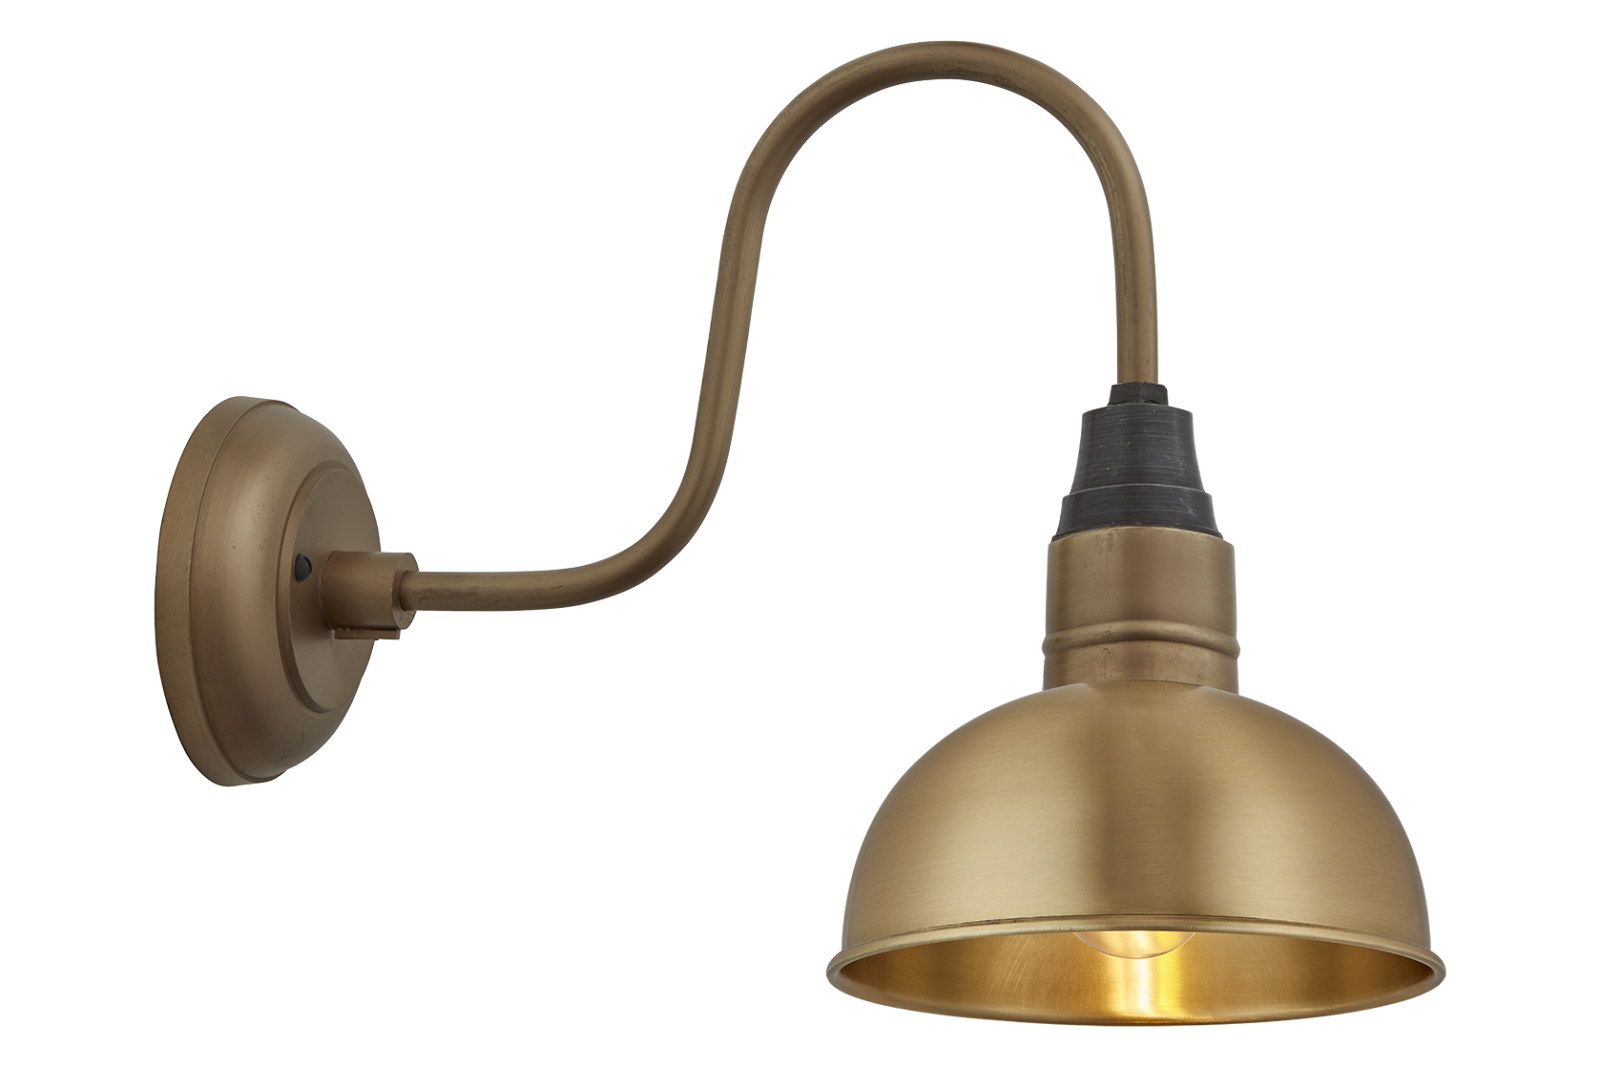 Swan Neck Dome Wall Light - 8 Inch Swan Neck Dome Wall Light - 8 Inch - Brass